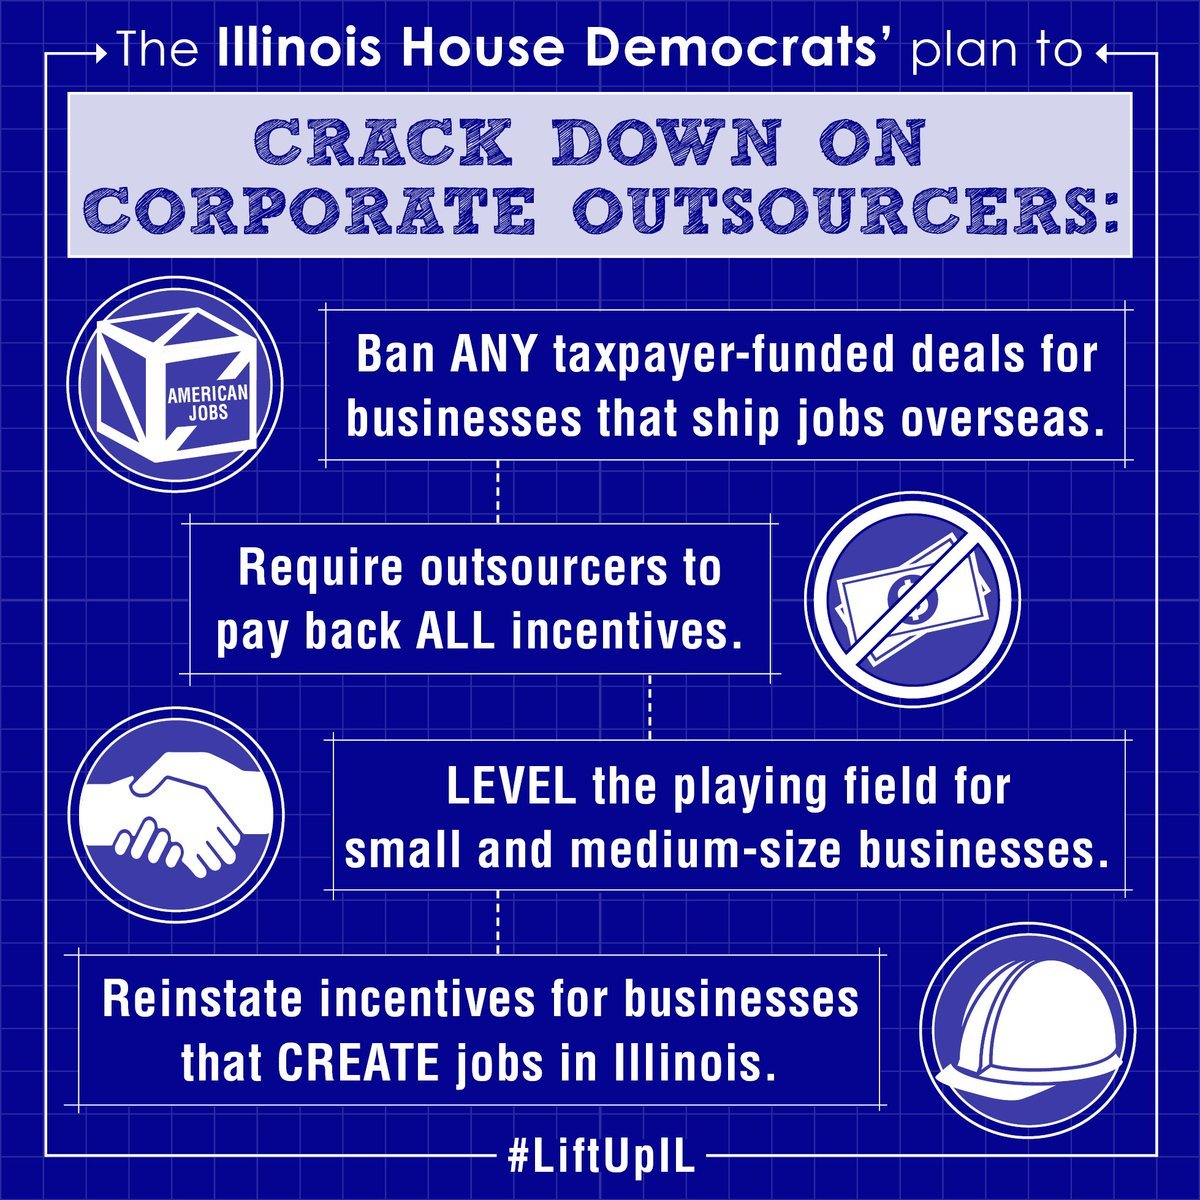 test Twitter Media - House Dems are fighting to crack down on corporate outsourcers. RT if you agree that we should only invest in IL job creators. #LiftUpIL https://t.co/PlqsETzszN